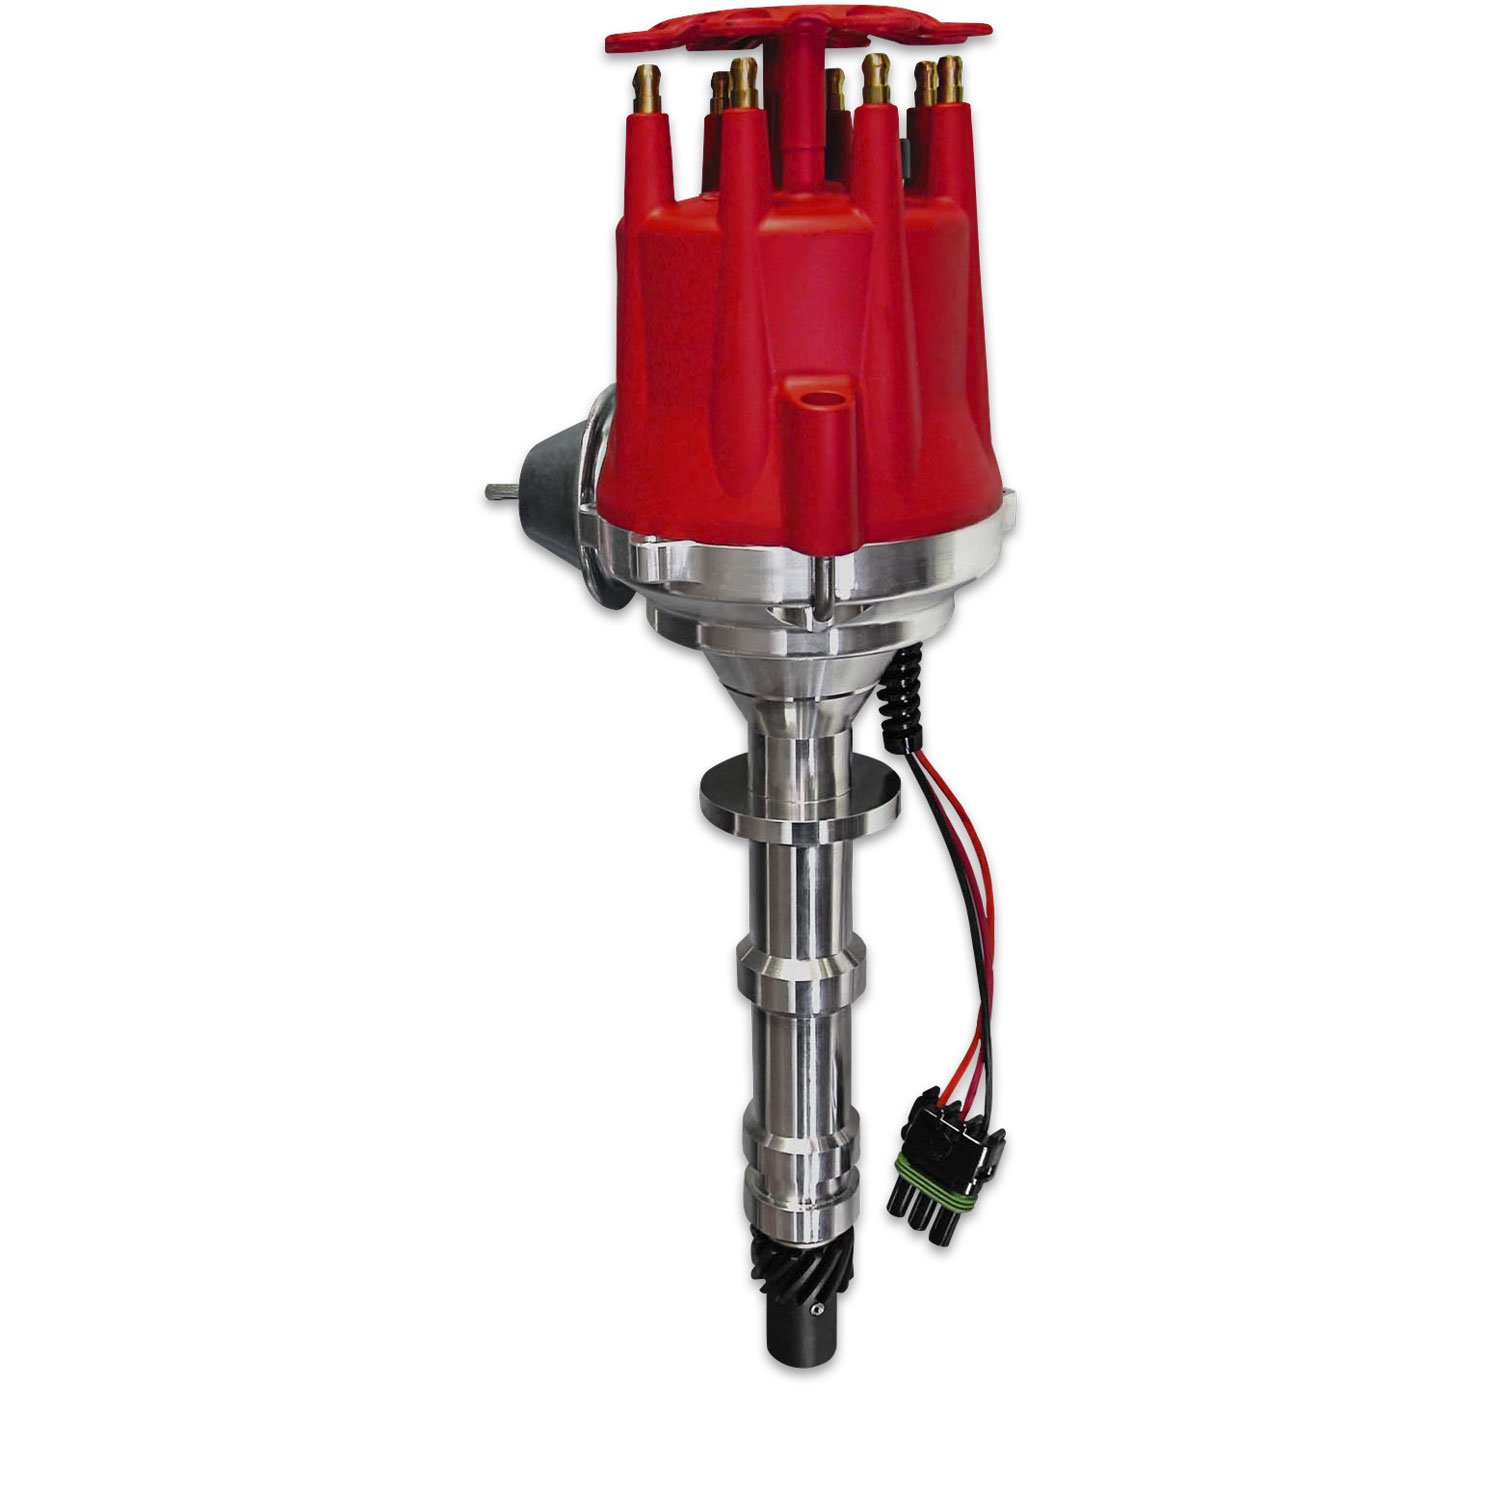 83931 - Chevy 409/509 Ready to Run Distributor Image